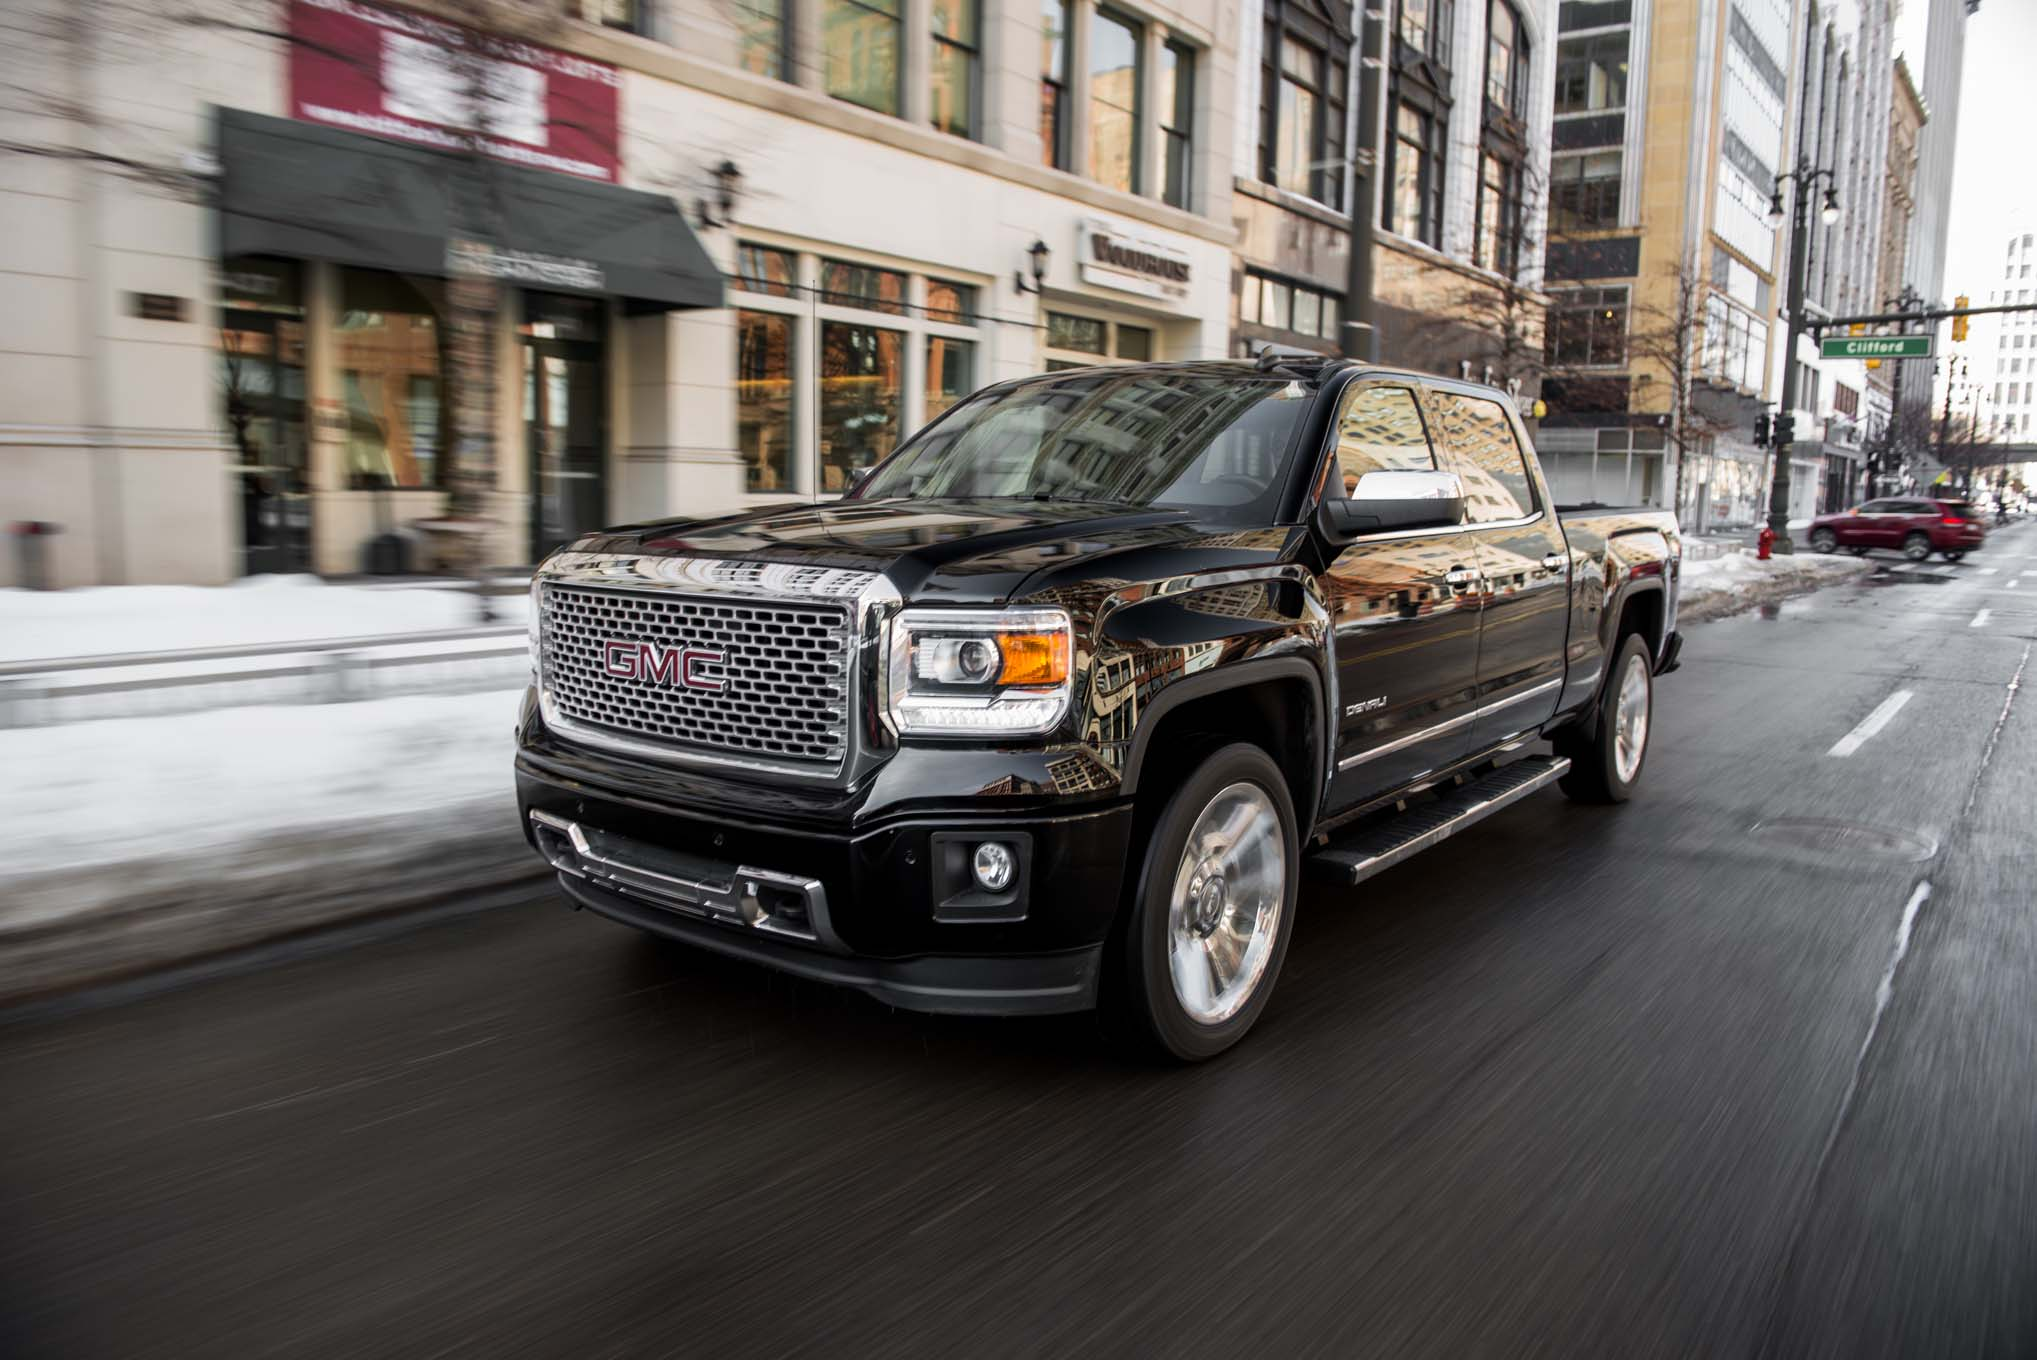 2018 GMC Sierra Denali 1500 Crew Cab photo - 4